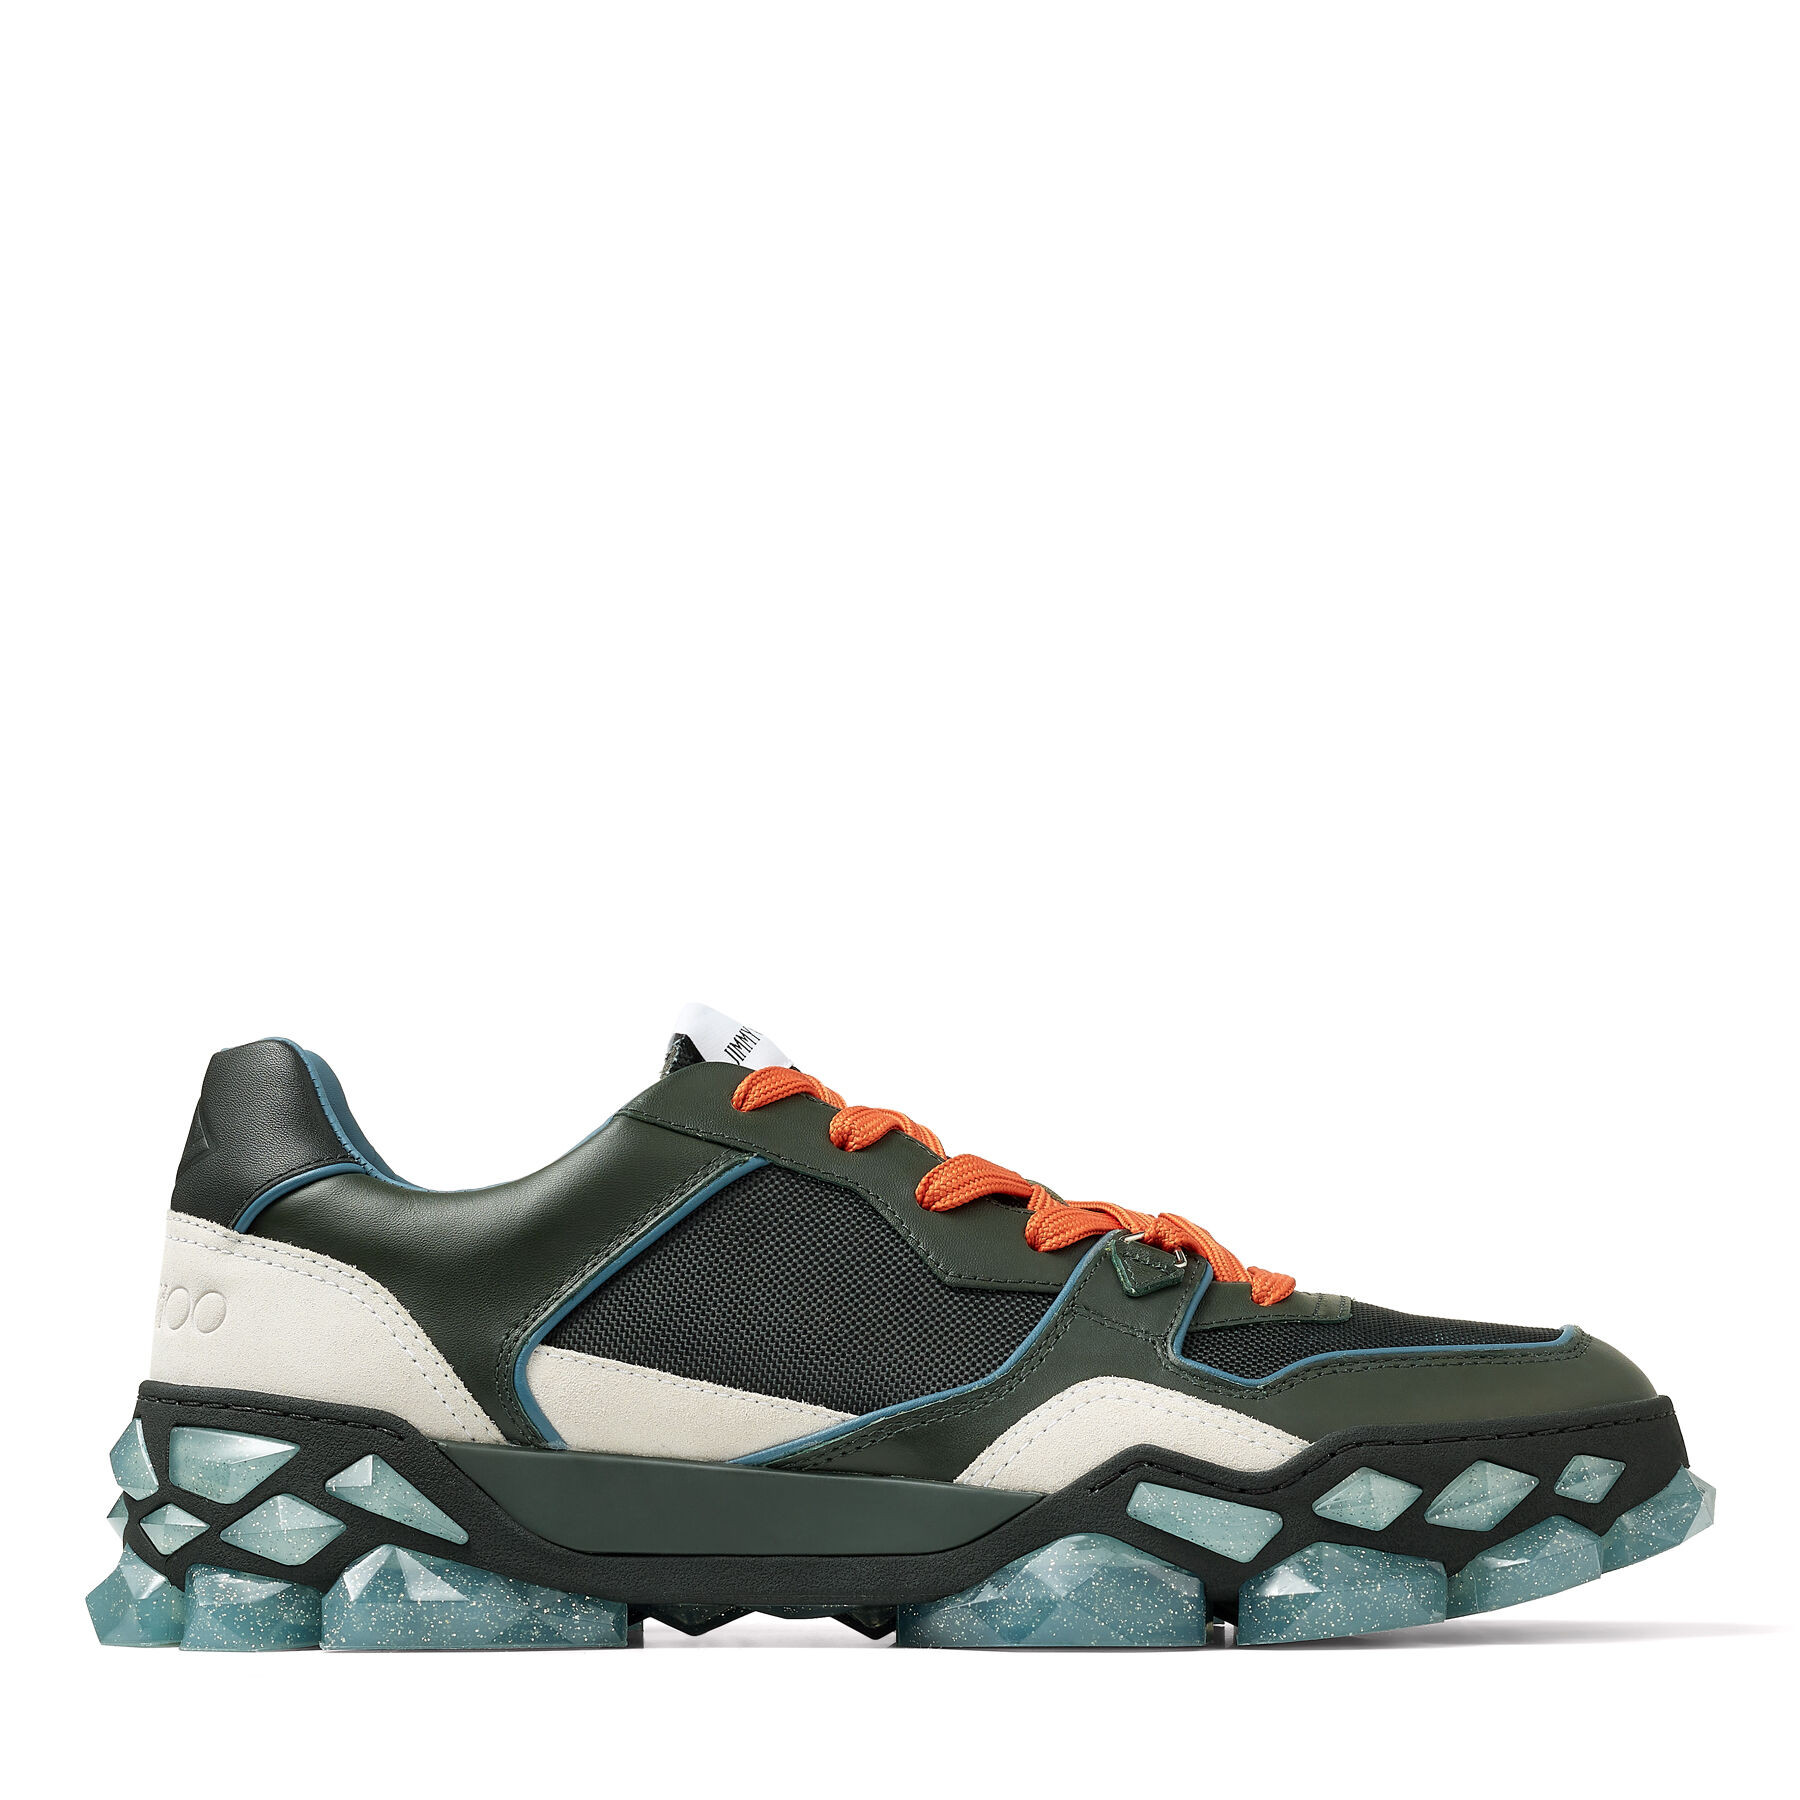 DIAMOND X TRAINER/M - Sea Green Mix Nylon and Leather Low Top Trainers